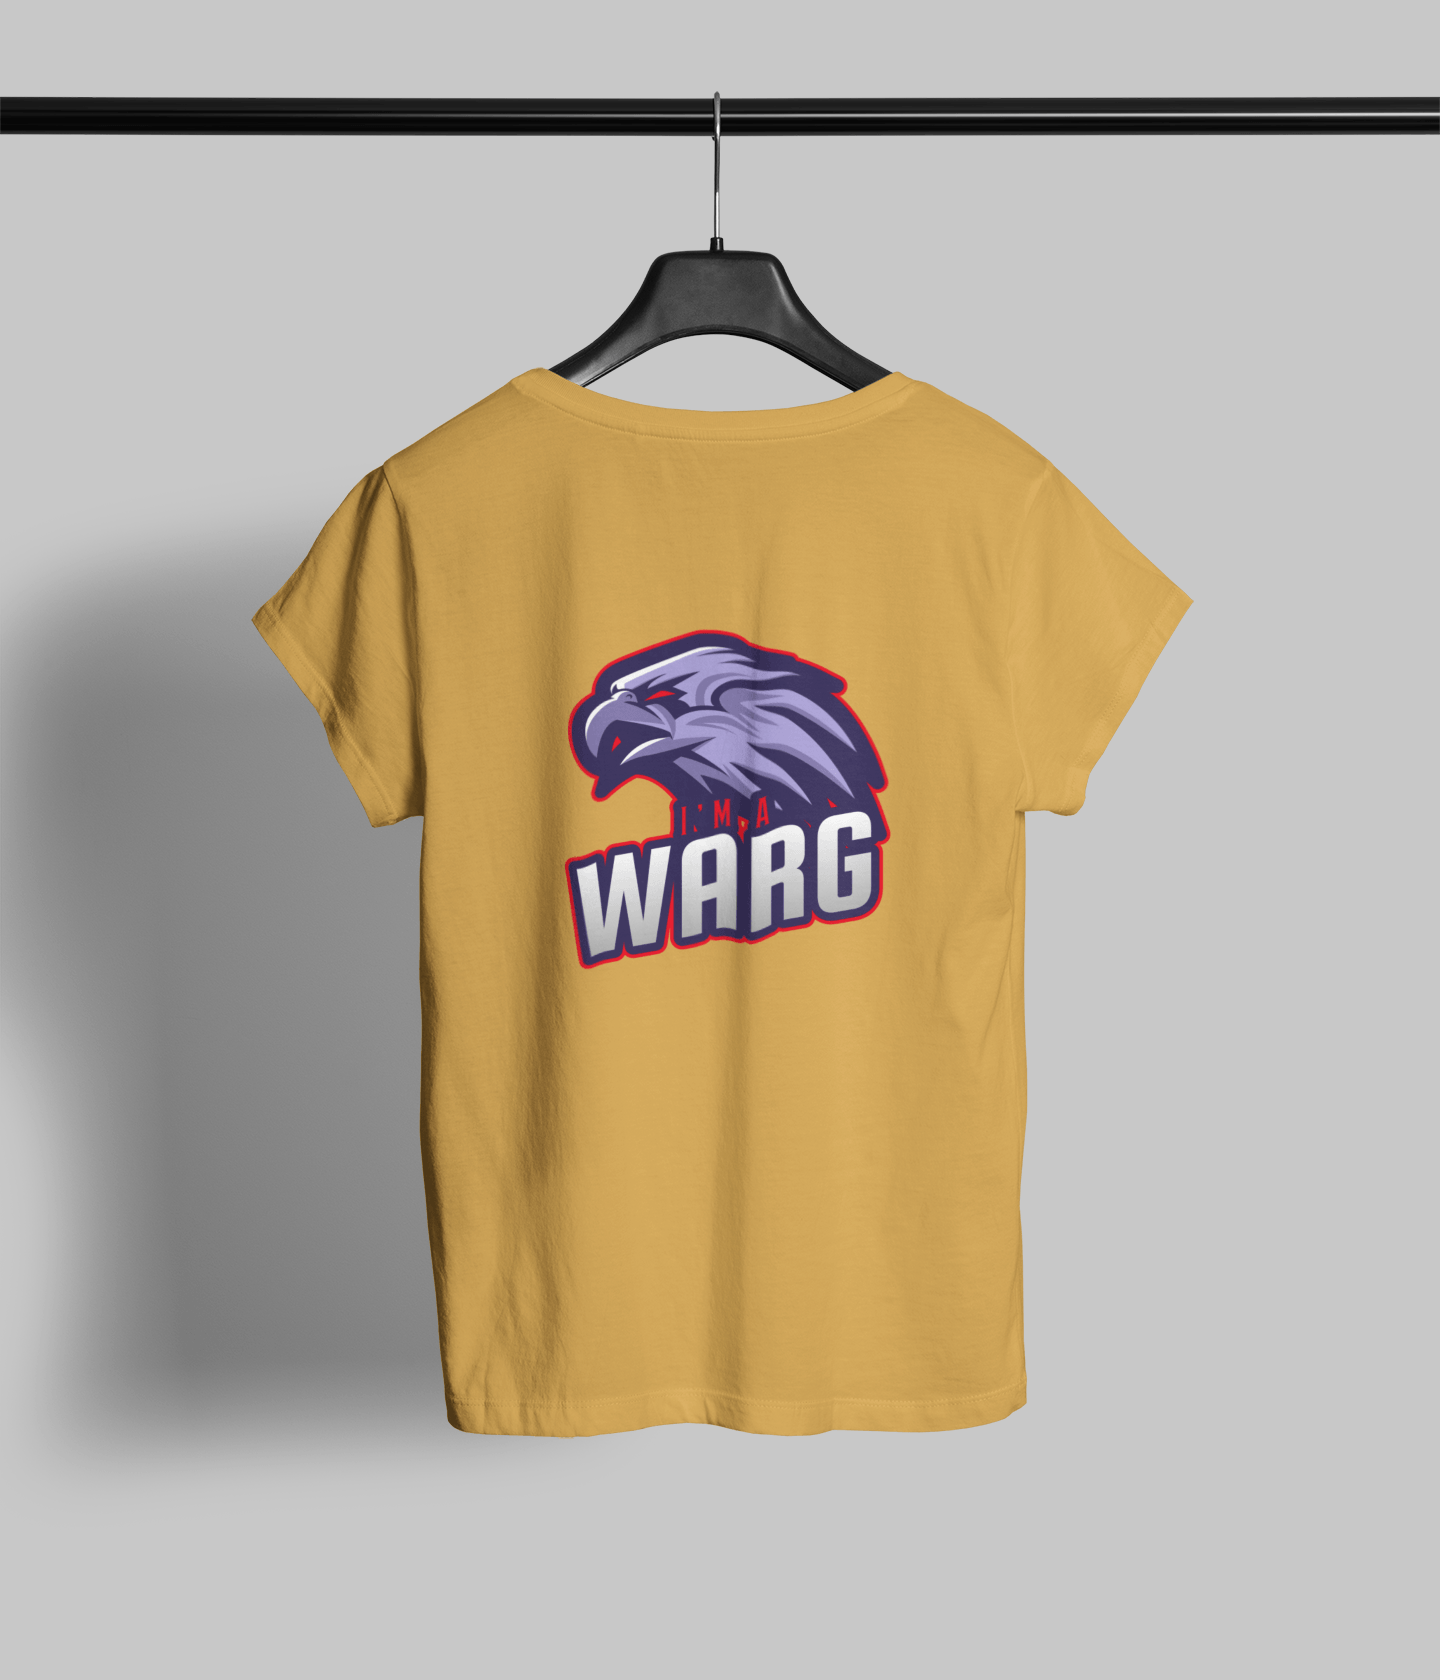 Warg Clothing Printrove Mustard Yellow 6